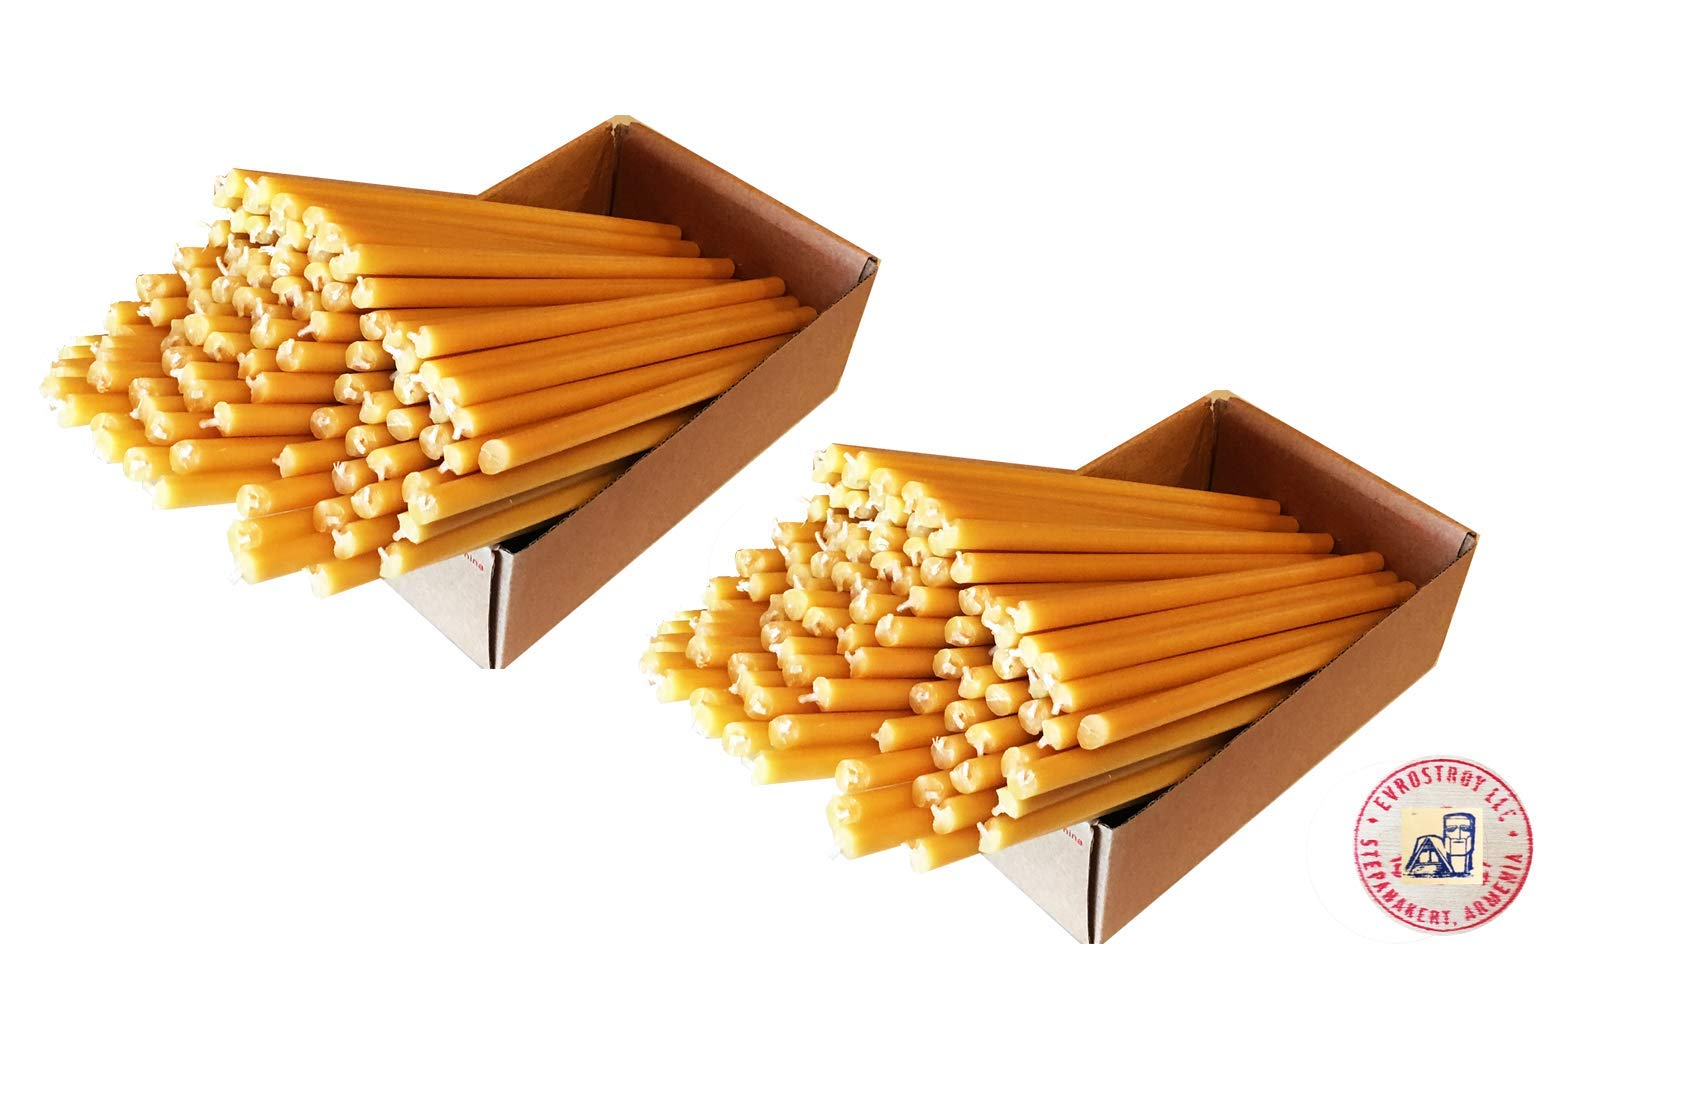 ARTSAKH 200 8'' Inch All Natural Bee-Wax Church Candles (8'' x 5/16'' Inch) Natural Honey Cent, Total Wt 4 Lb or 1 kg 814 gr.